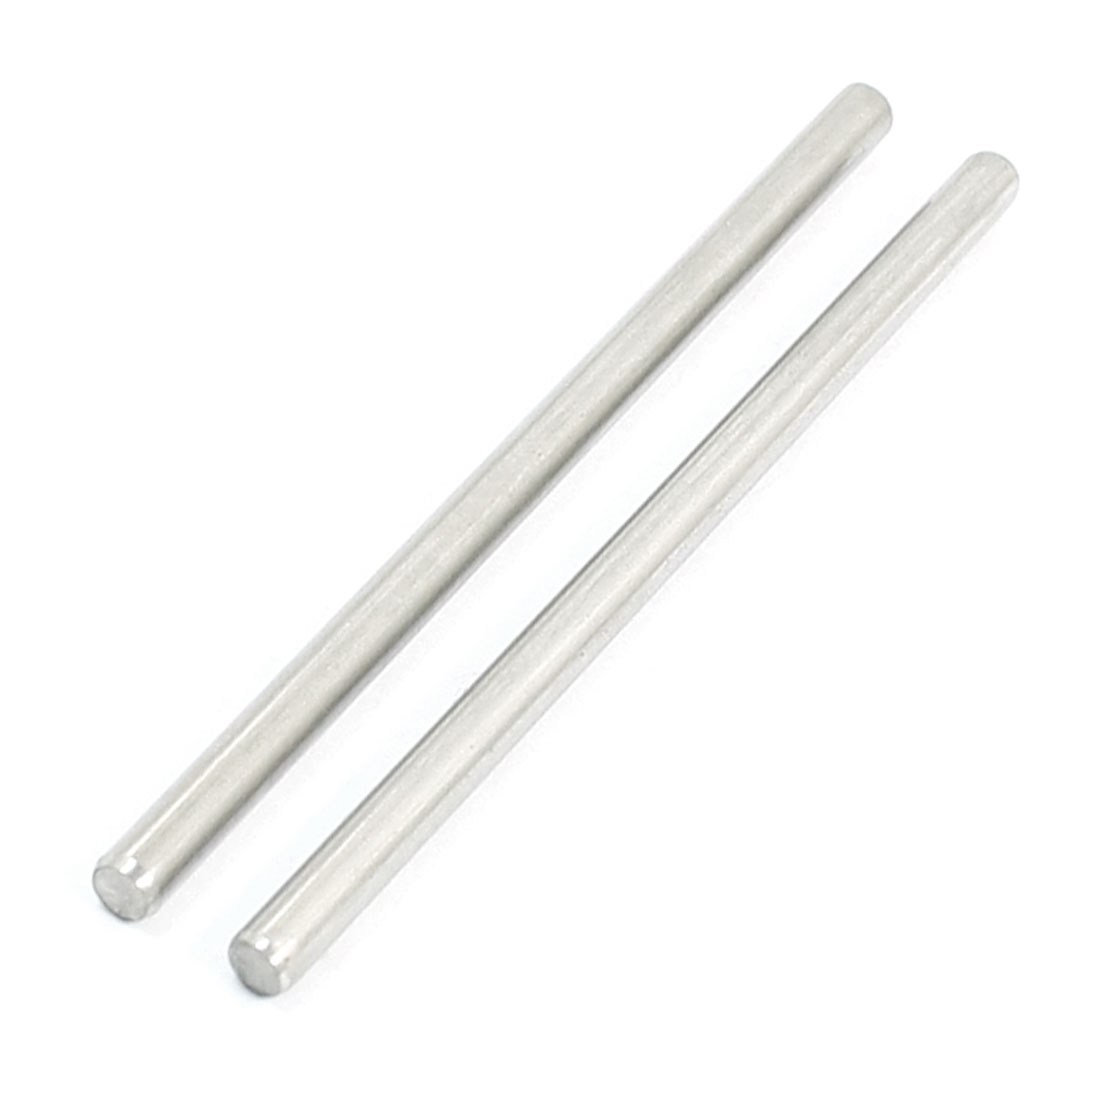 "2Pcs 3mm Diameter Stainless Steel Motion Axle Circular Round Rod Bar 2.4"" Long"